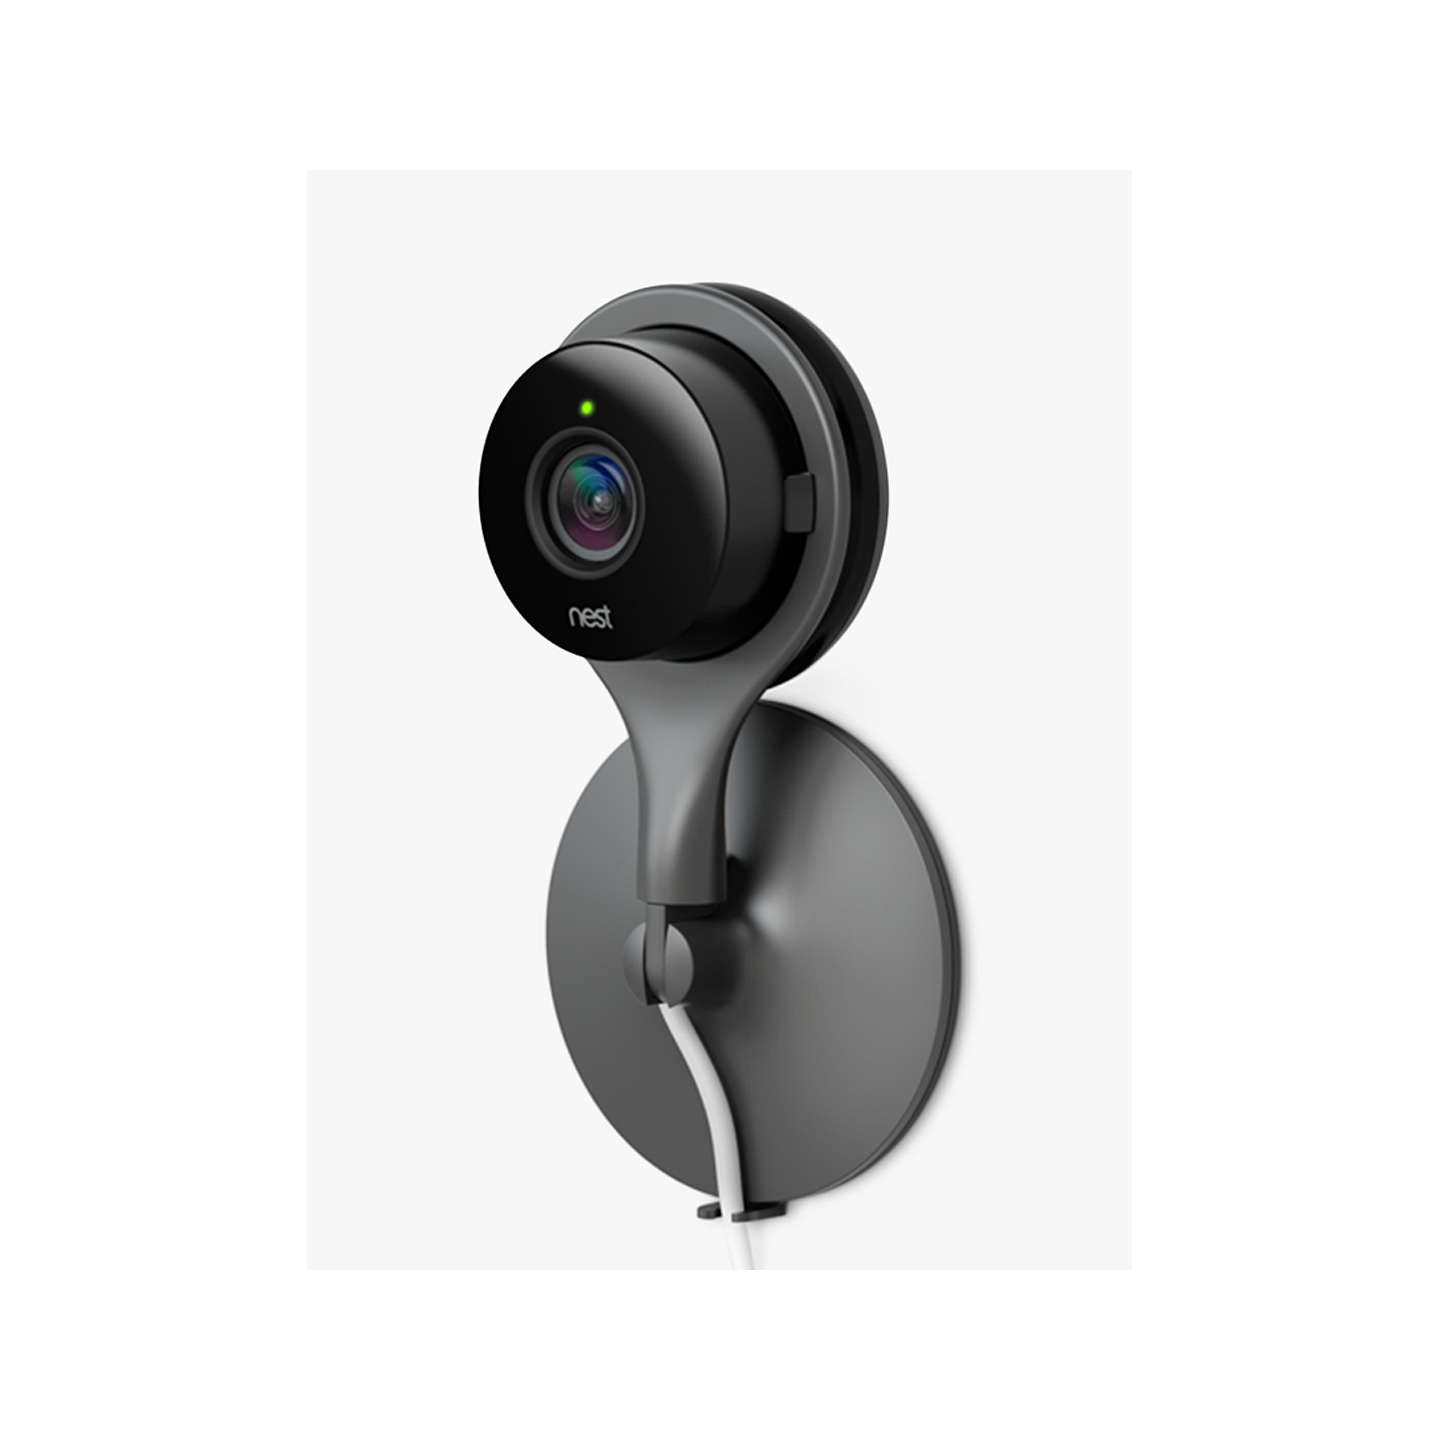 BuyNest Cam Indoor Security Camera, Pack of 2 Online at johnlewis.com